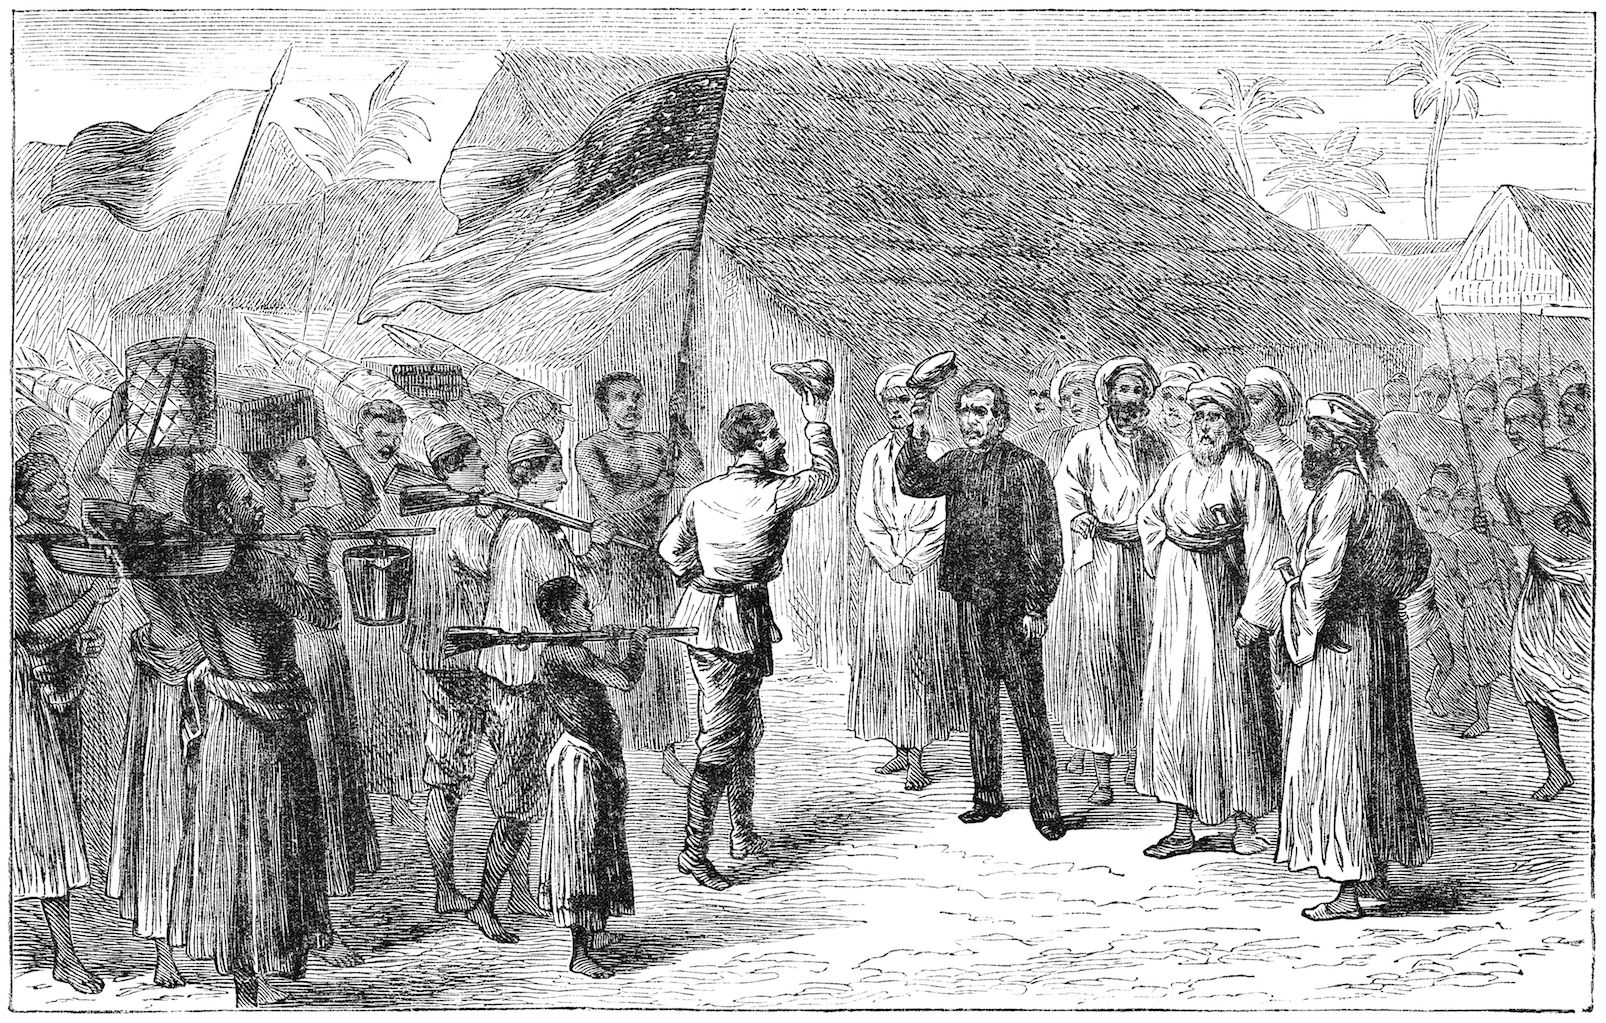 Explorer Henry Morton Stanley met explorer David Livingstone in what might have been described at the time as deepest, darkest Africa.